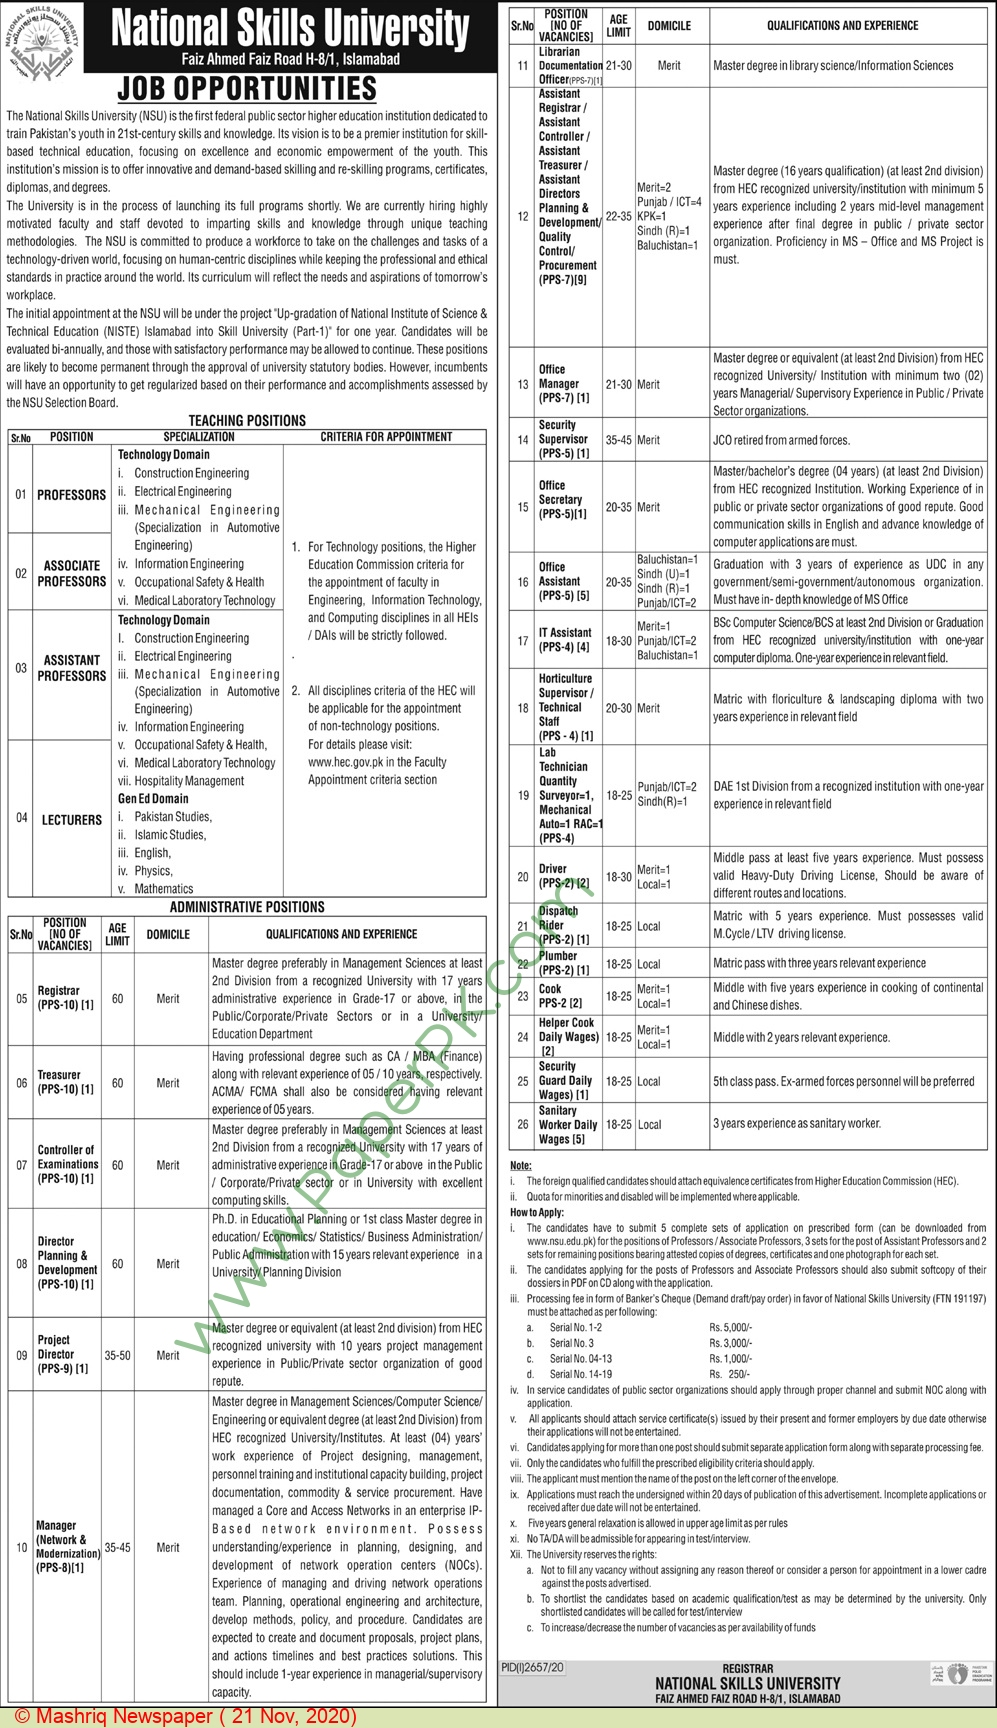 National Skills University jobs newspaper ad for It Assistant in Islamabad